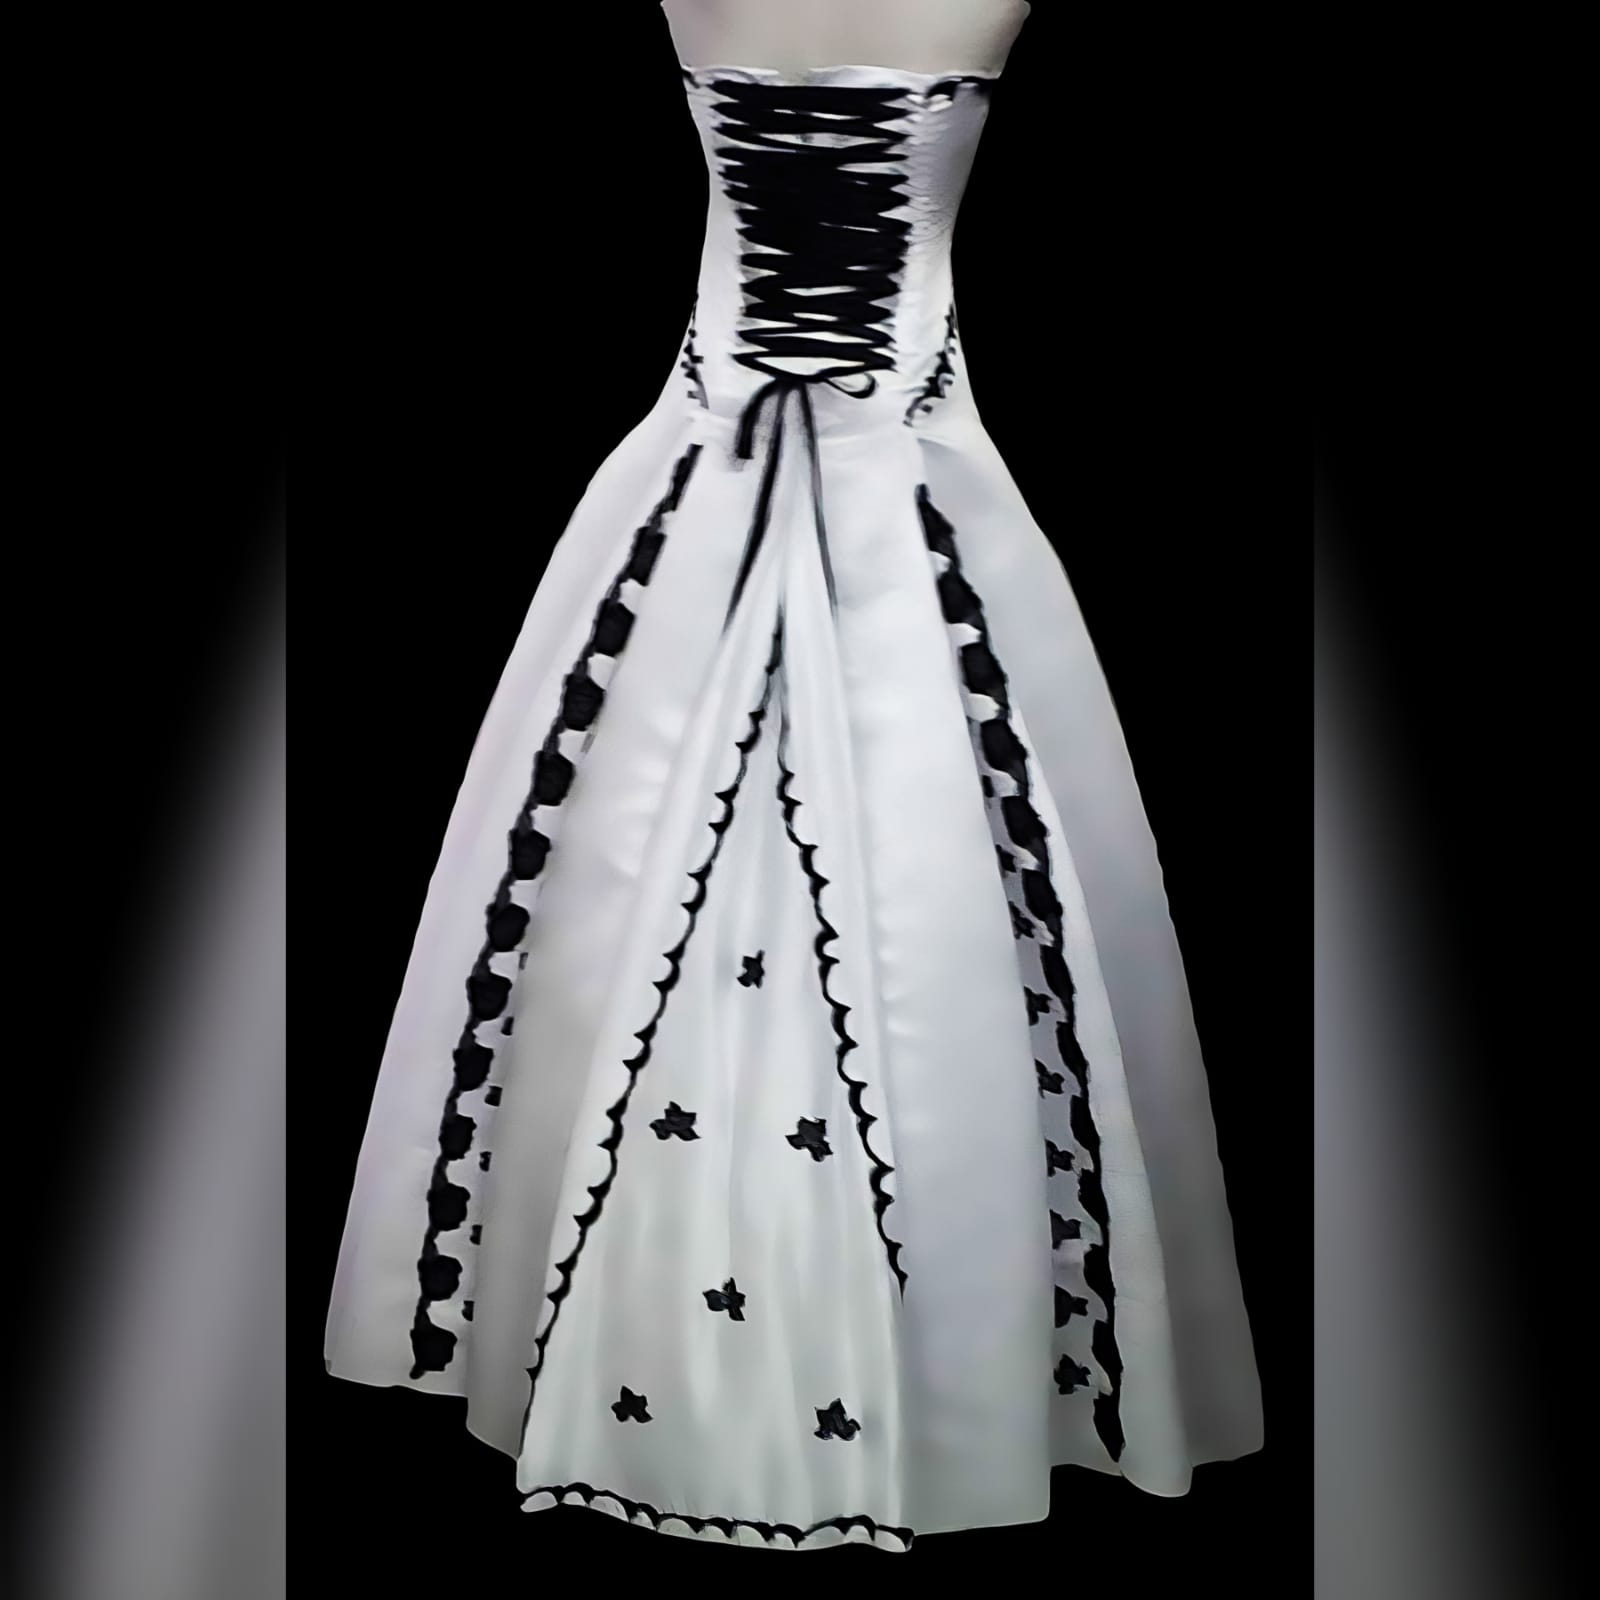 White & black panelled boob tube ballgown wedding dress 2 white panelled boob tube ballgown wedding dress with black lace detail spread throughout the hidden panels of wedding dress and on the under bust area. A lace up back in with black ribbon. When you walk with this dress, it opens to reveal the black lace.